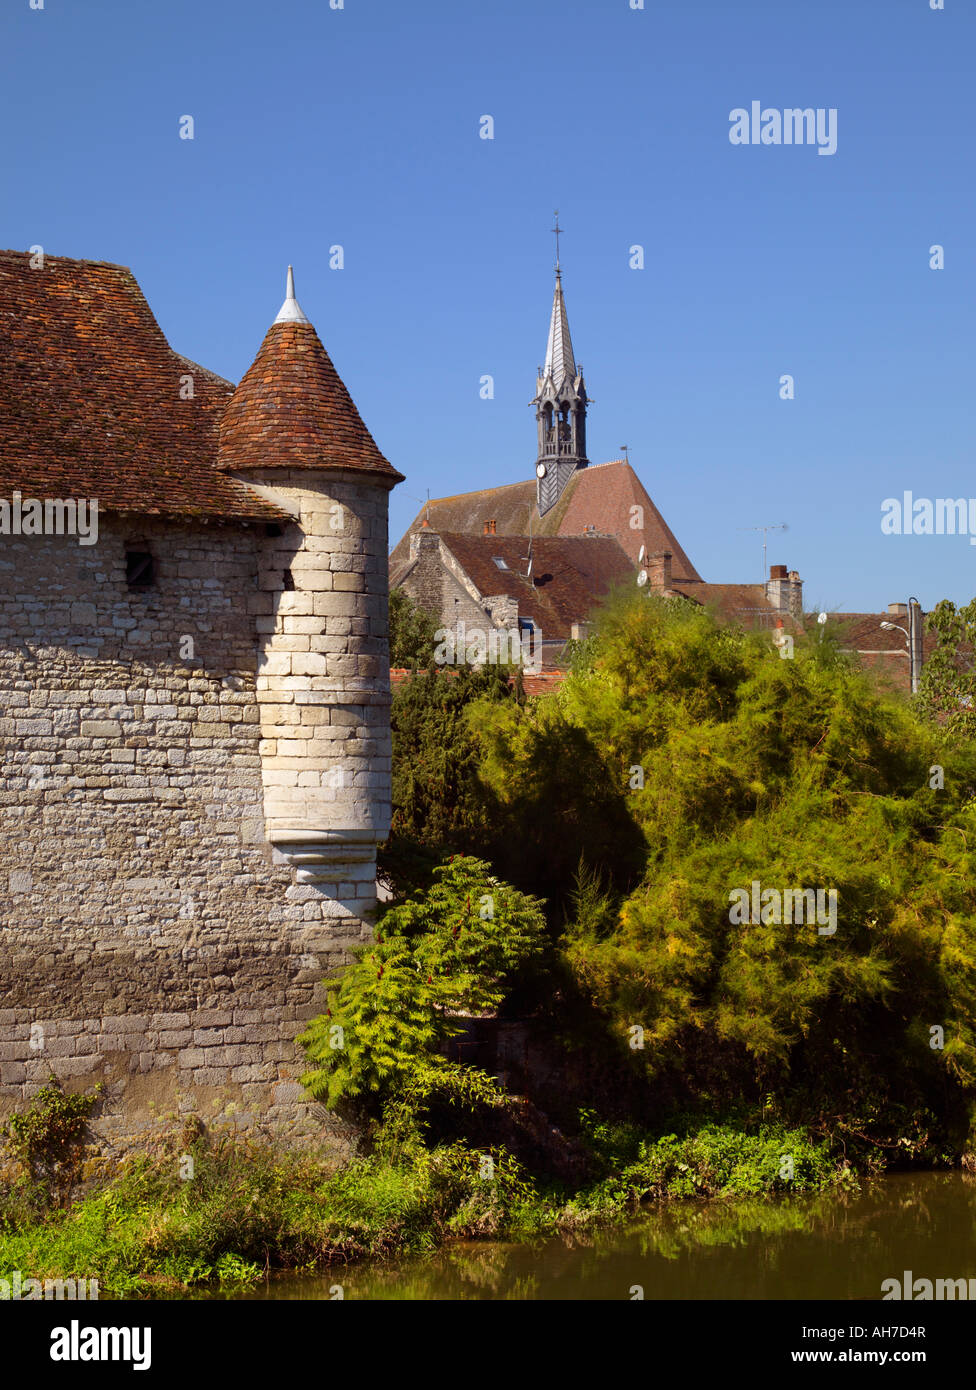 St Martin Collegiate Church viewed over the Serein River in Chablis Yonne France - Stock Image